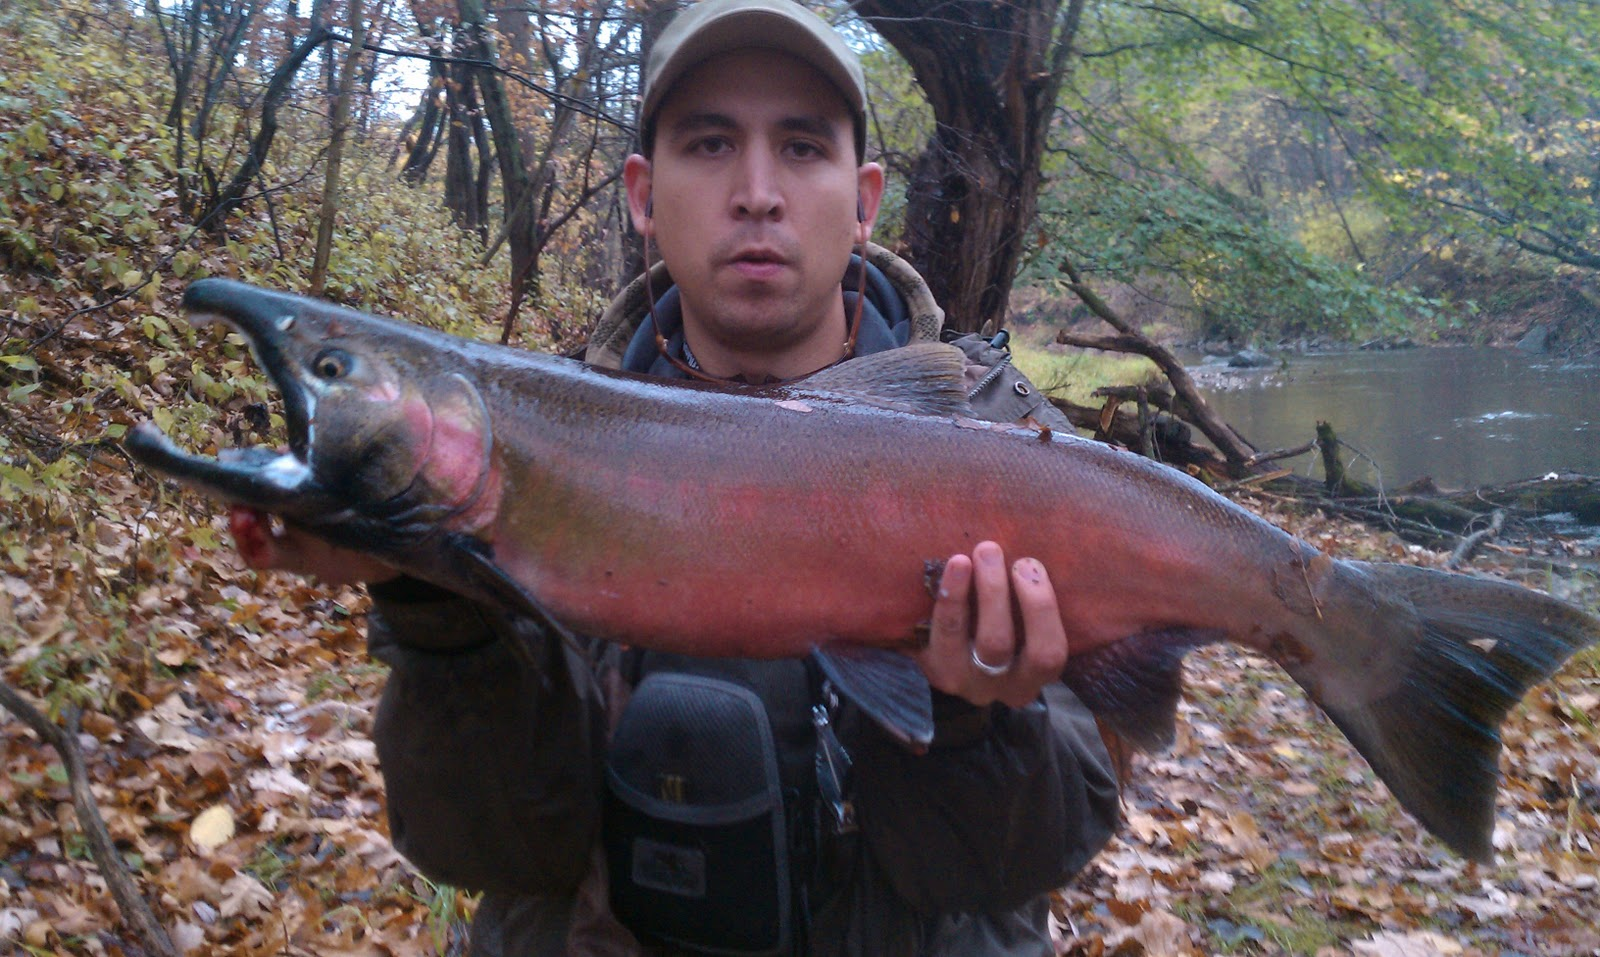 Illinois wisconsin fishing fly fishing salmon southeast wi for Salmon fishing wisconsin